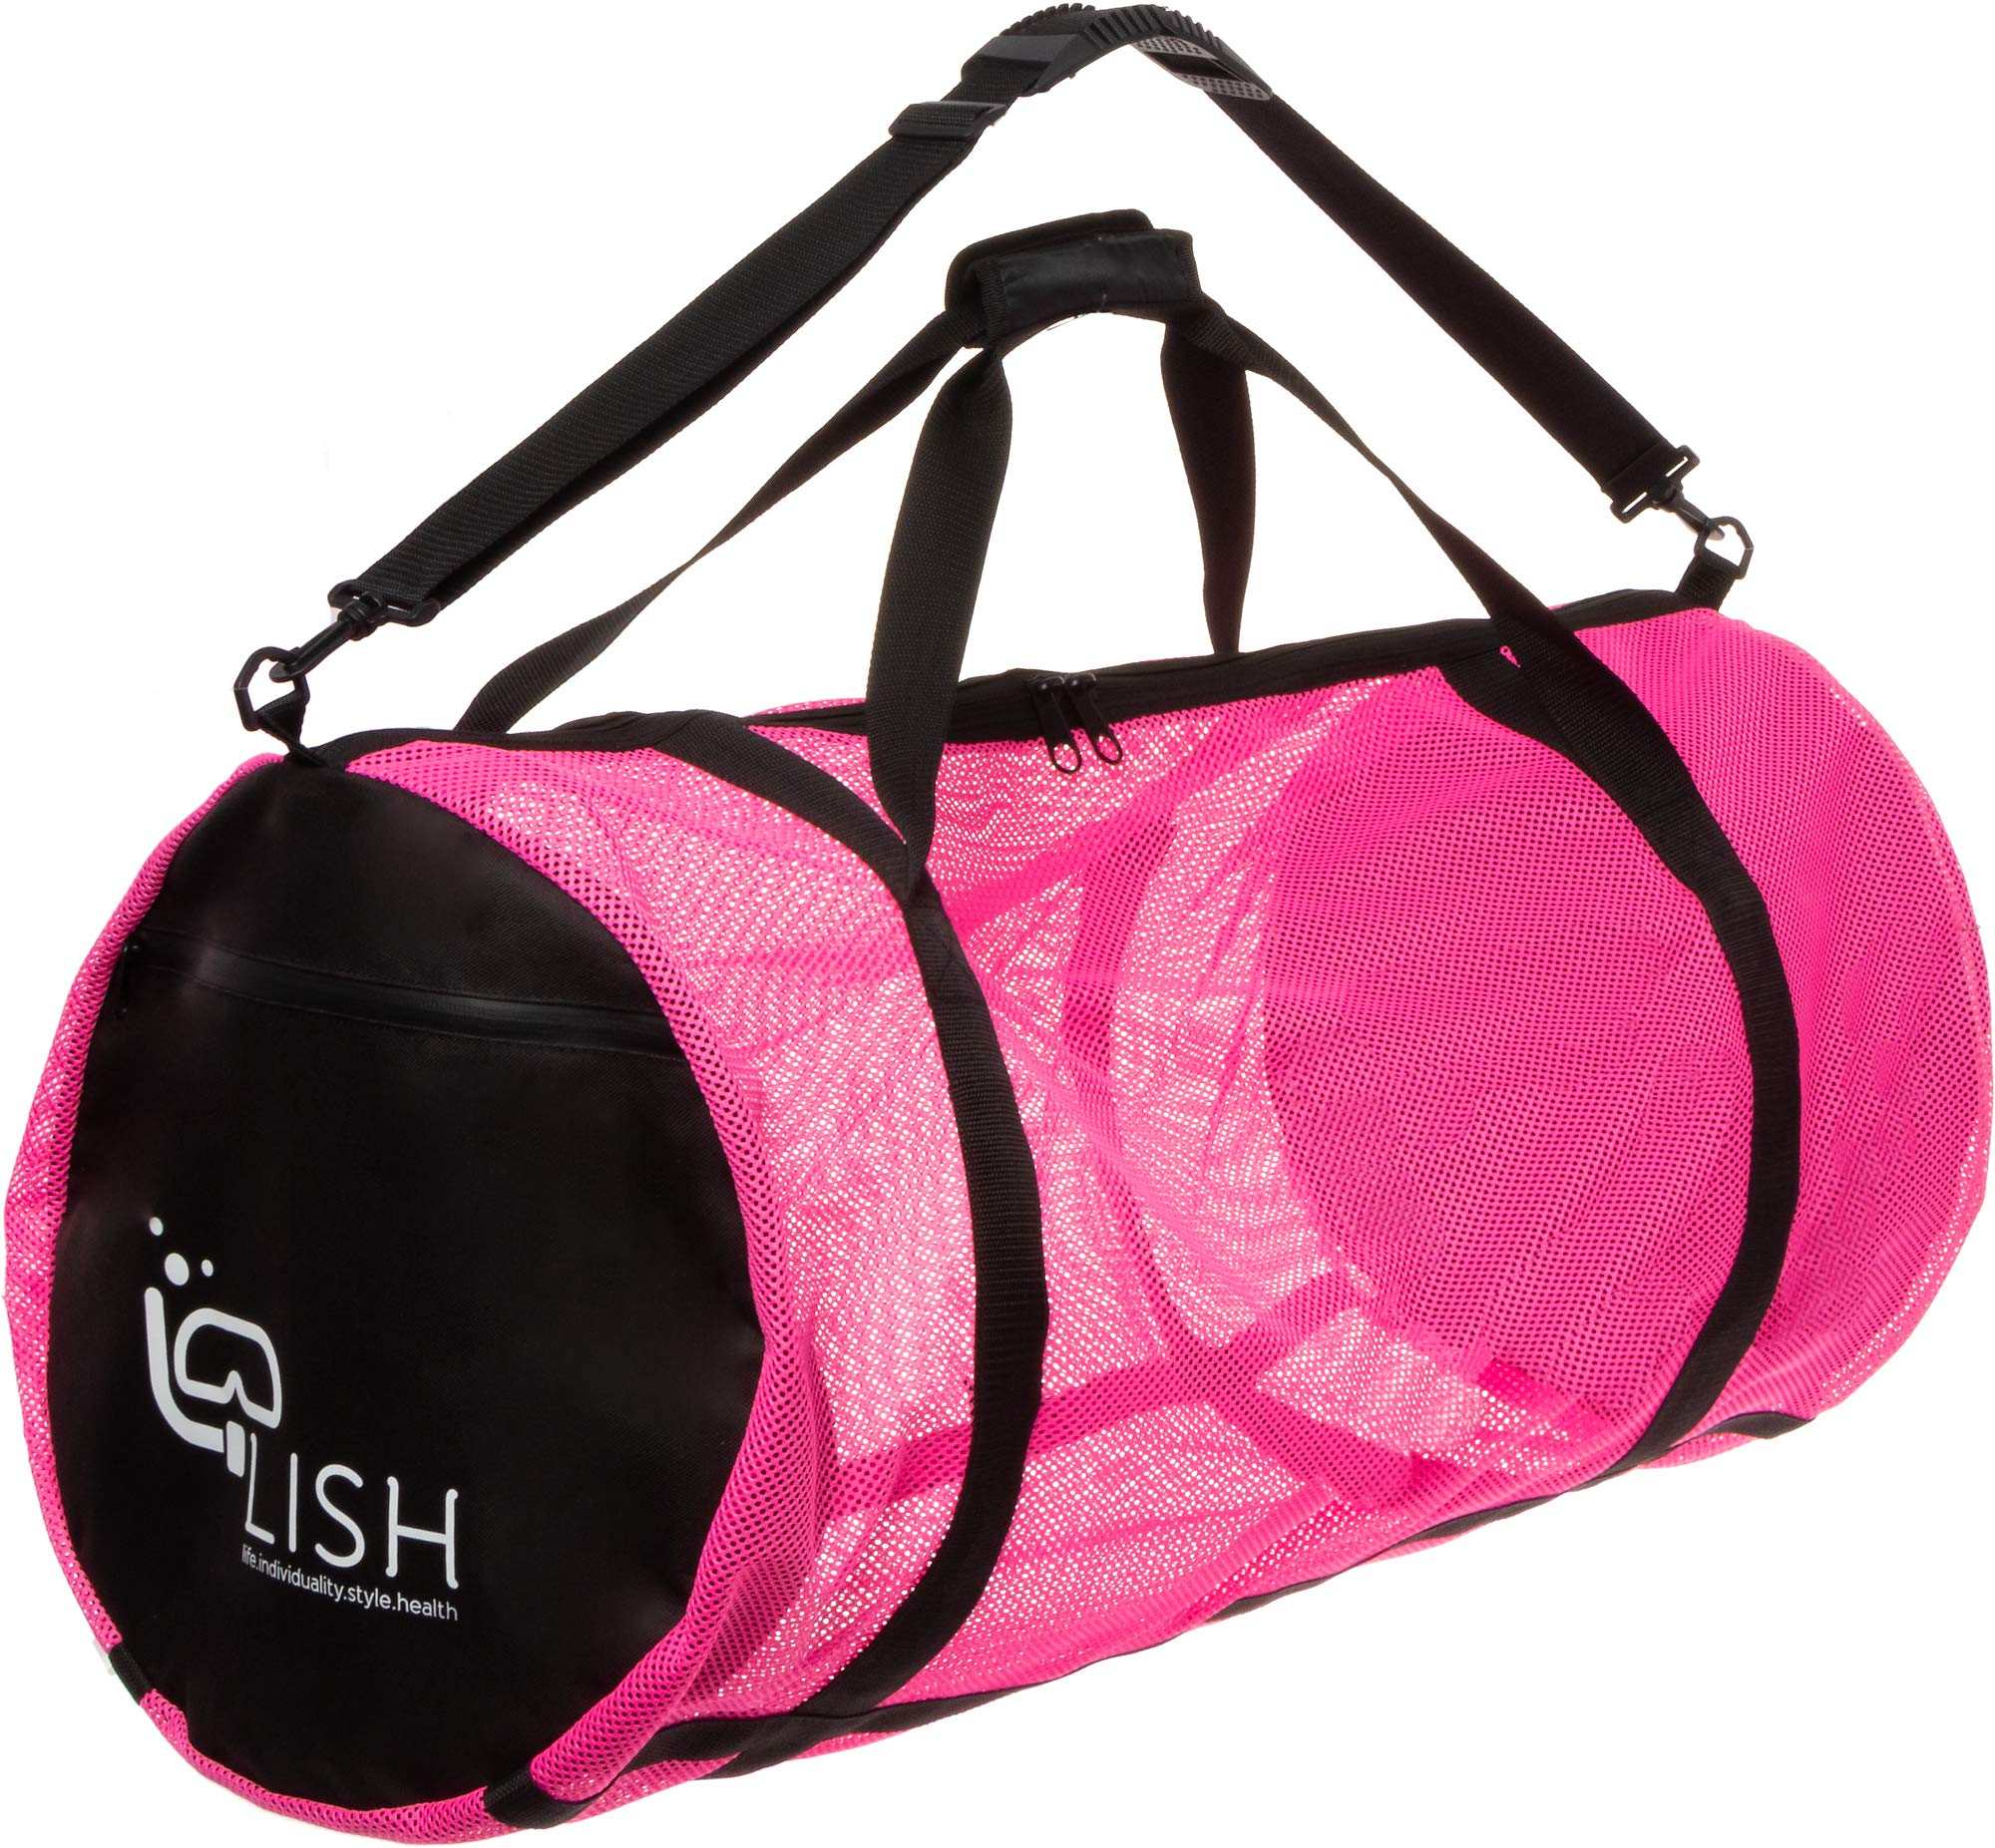 LISH Mesh Dive Bag - XL Multi-Purpose Equipment Diving Duffle Gear Tote, Ideal for Scuba, Snorkeling, Surfing and More (Pink) by LISH